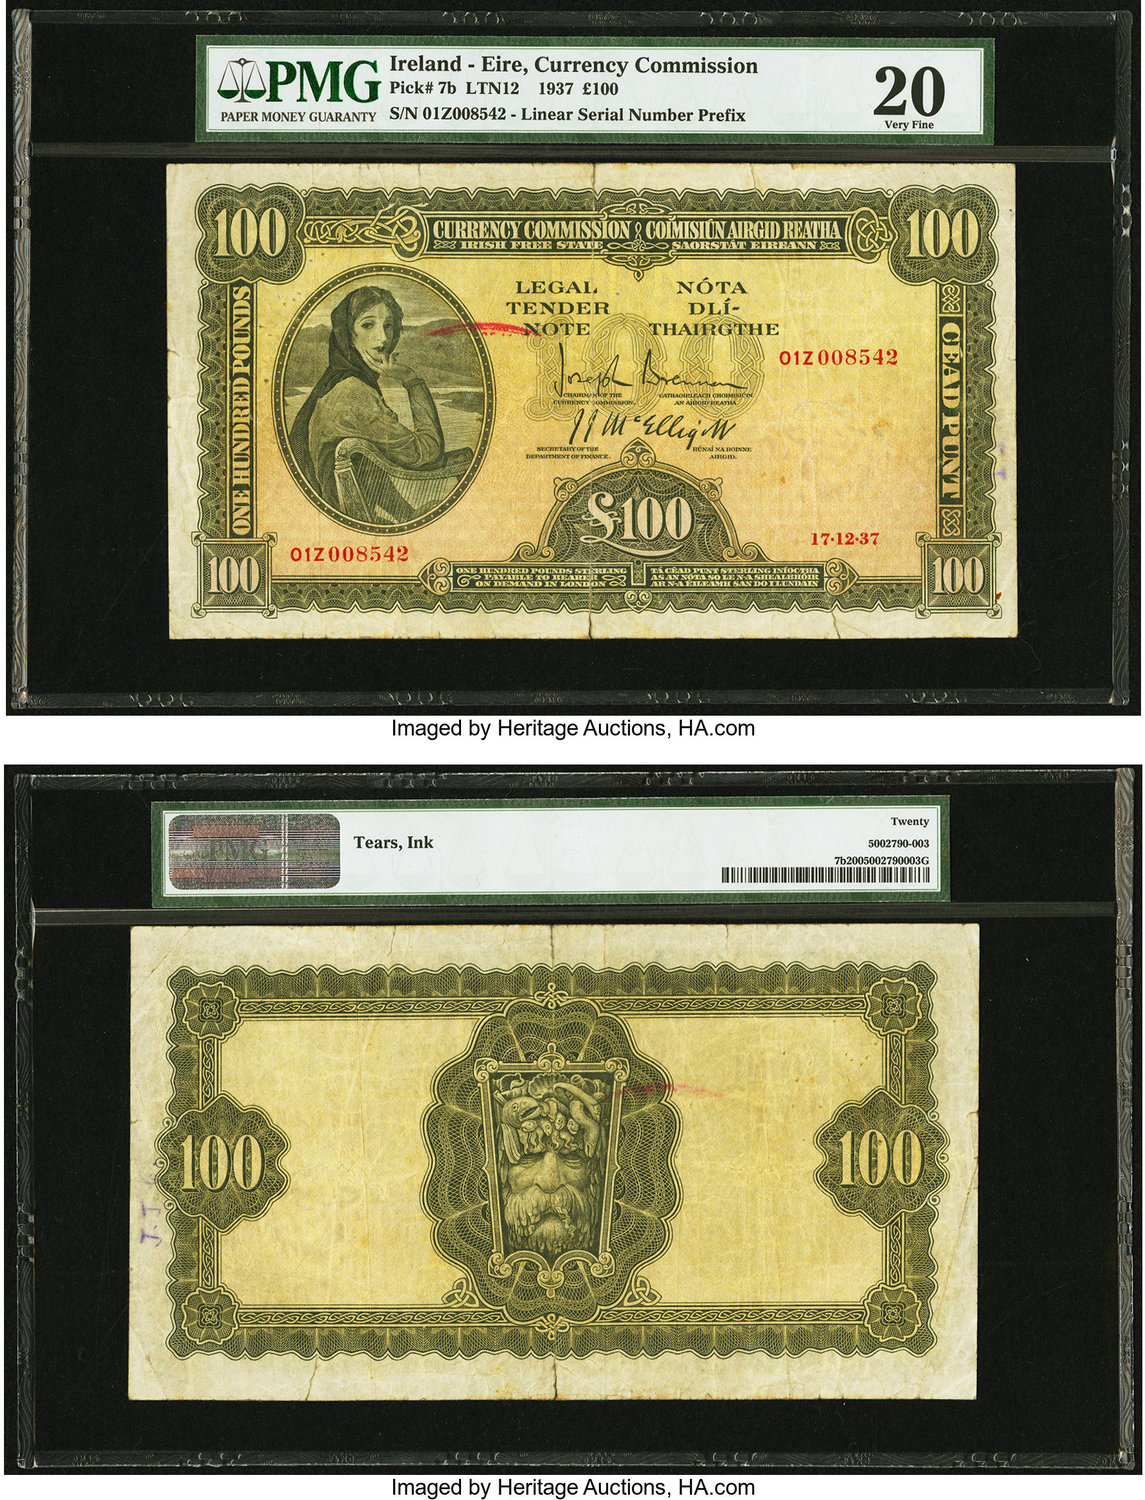 World Currency Ireland Commission 100 Pounds 17 12 1937 Pick 7b An Iconic Irish Issue Grandly Sized And